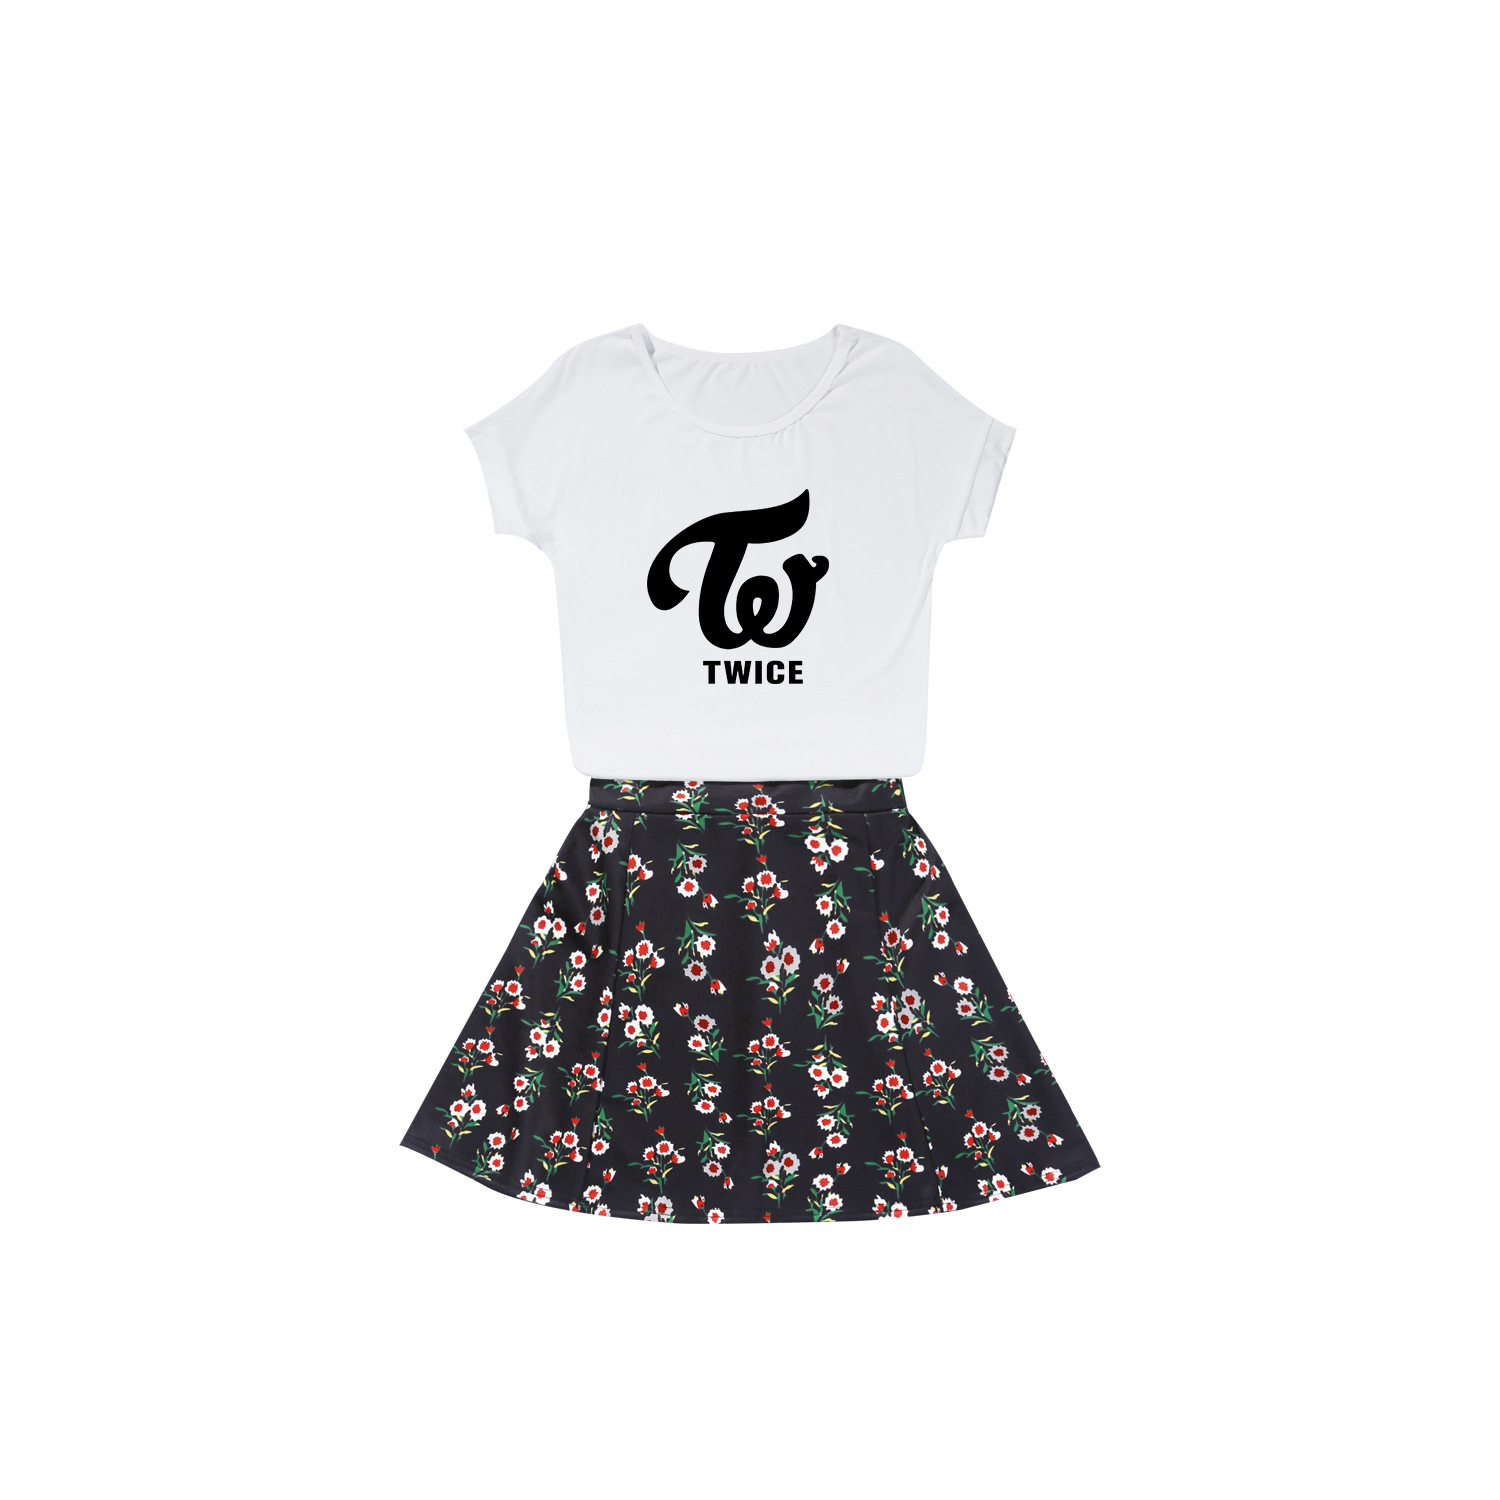 Twice Celebrity Style Korean-style Fashion Short Sleeve Summer Two-Piece Set Sporty Casual Comfortable Navel Short Skirt Set